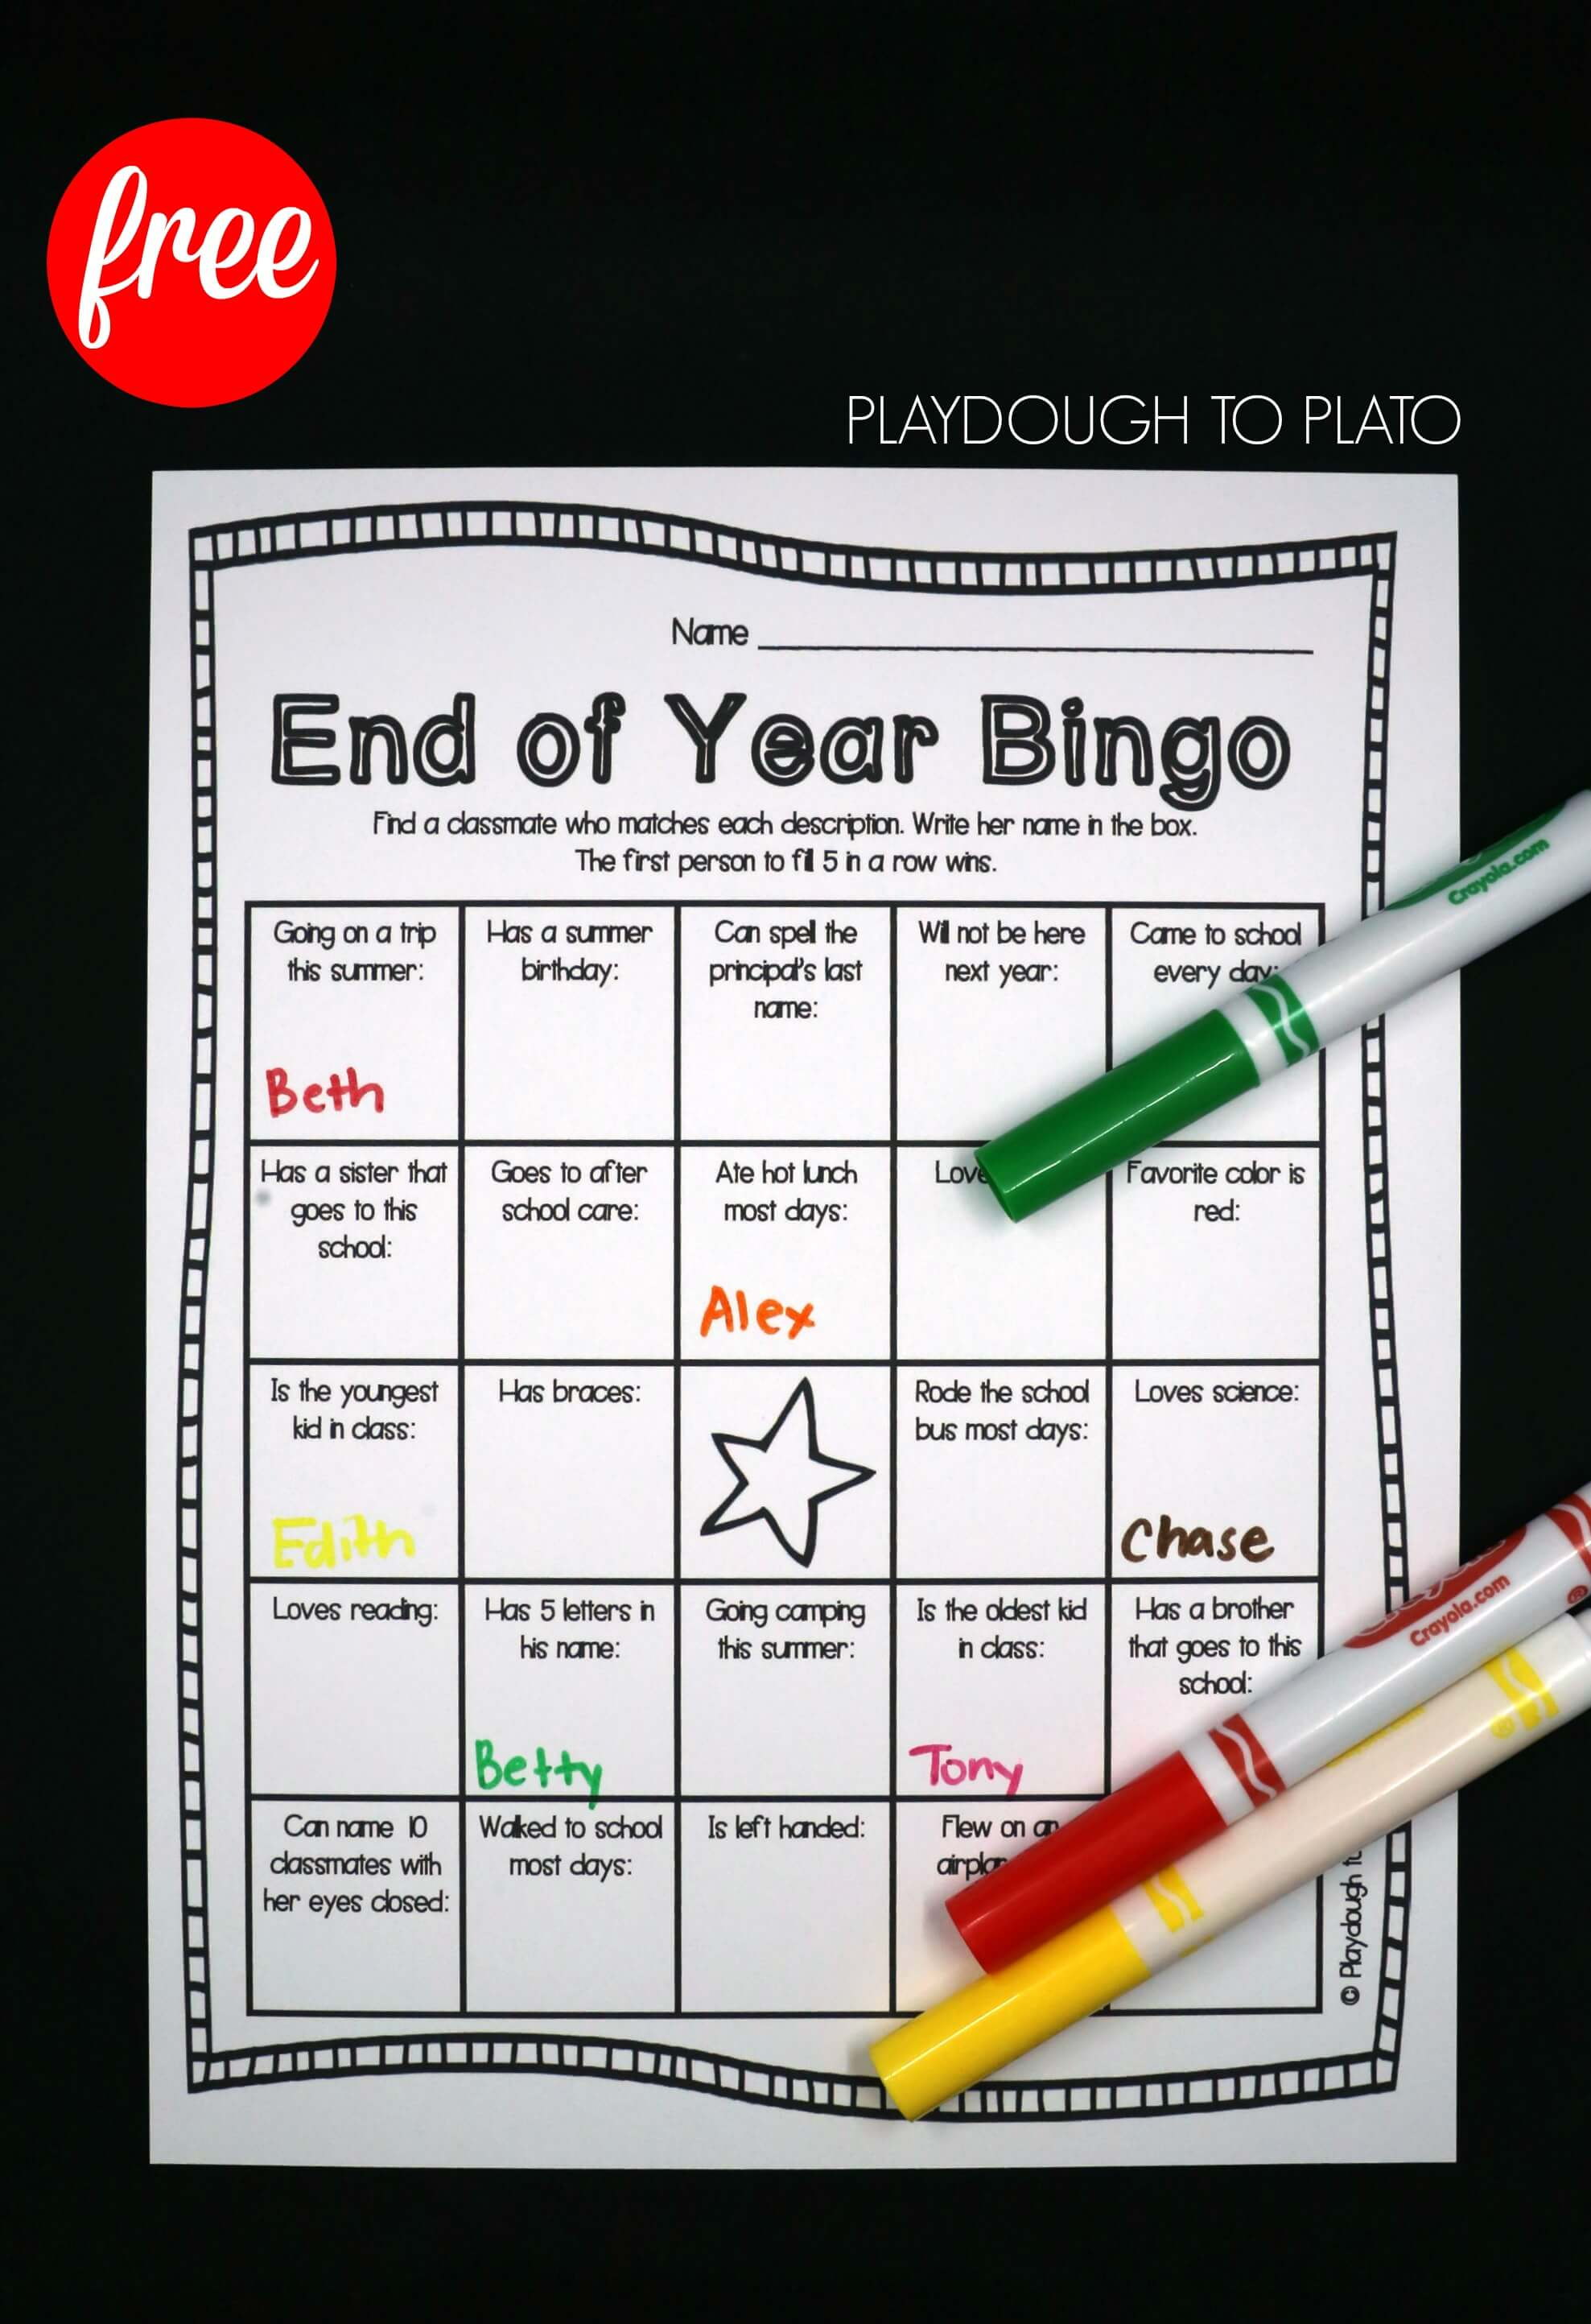 how to play bingo at school